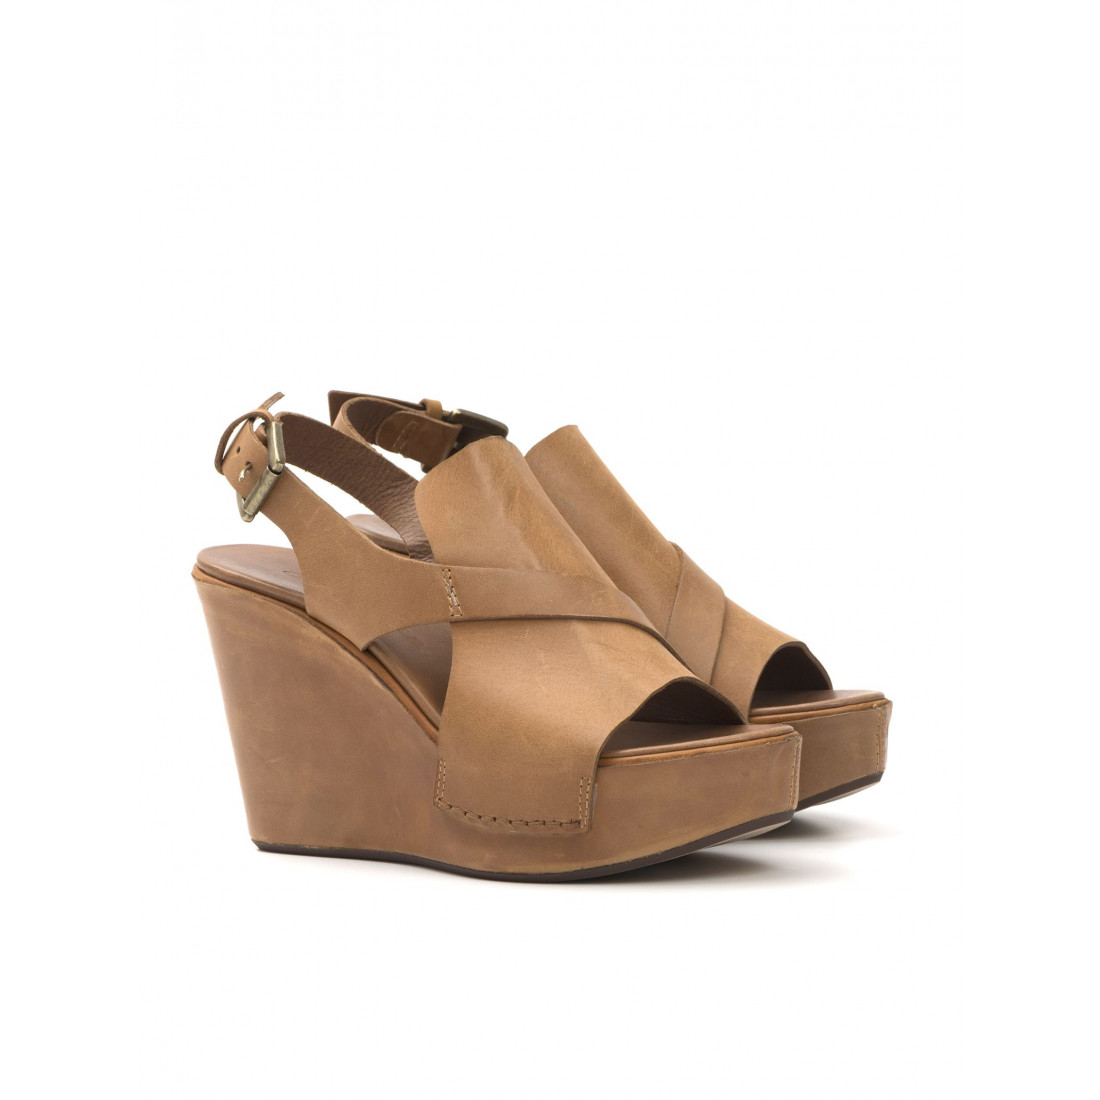 wide range of cheap online CRITERIA Sandals low price fee shipping cheap price 05YA0Y3ae8